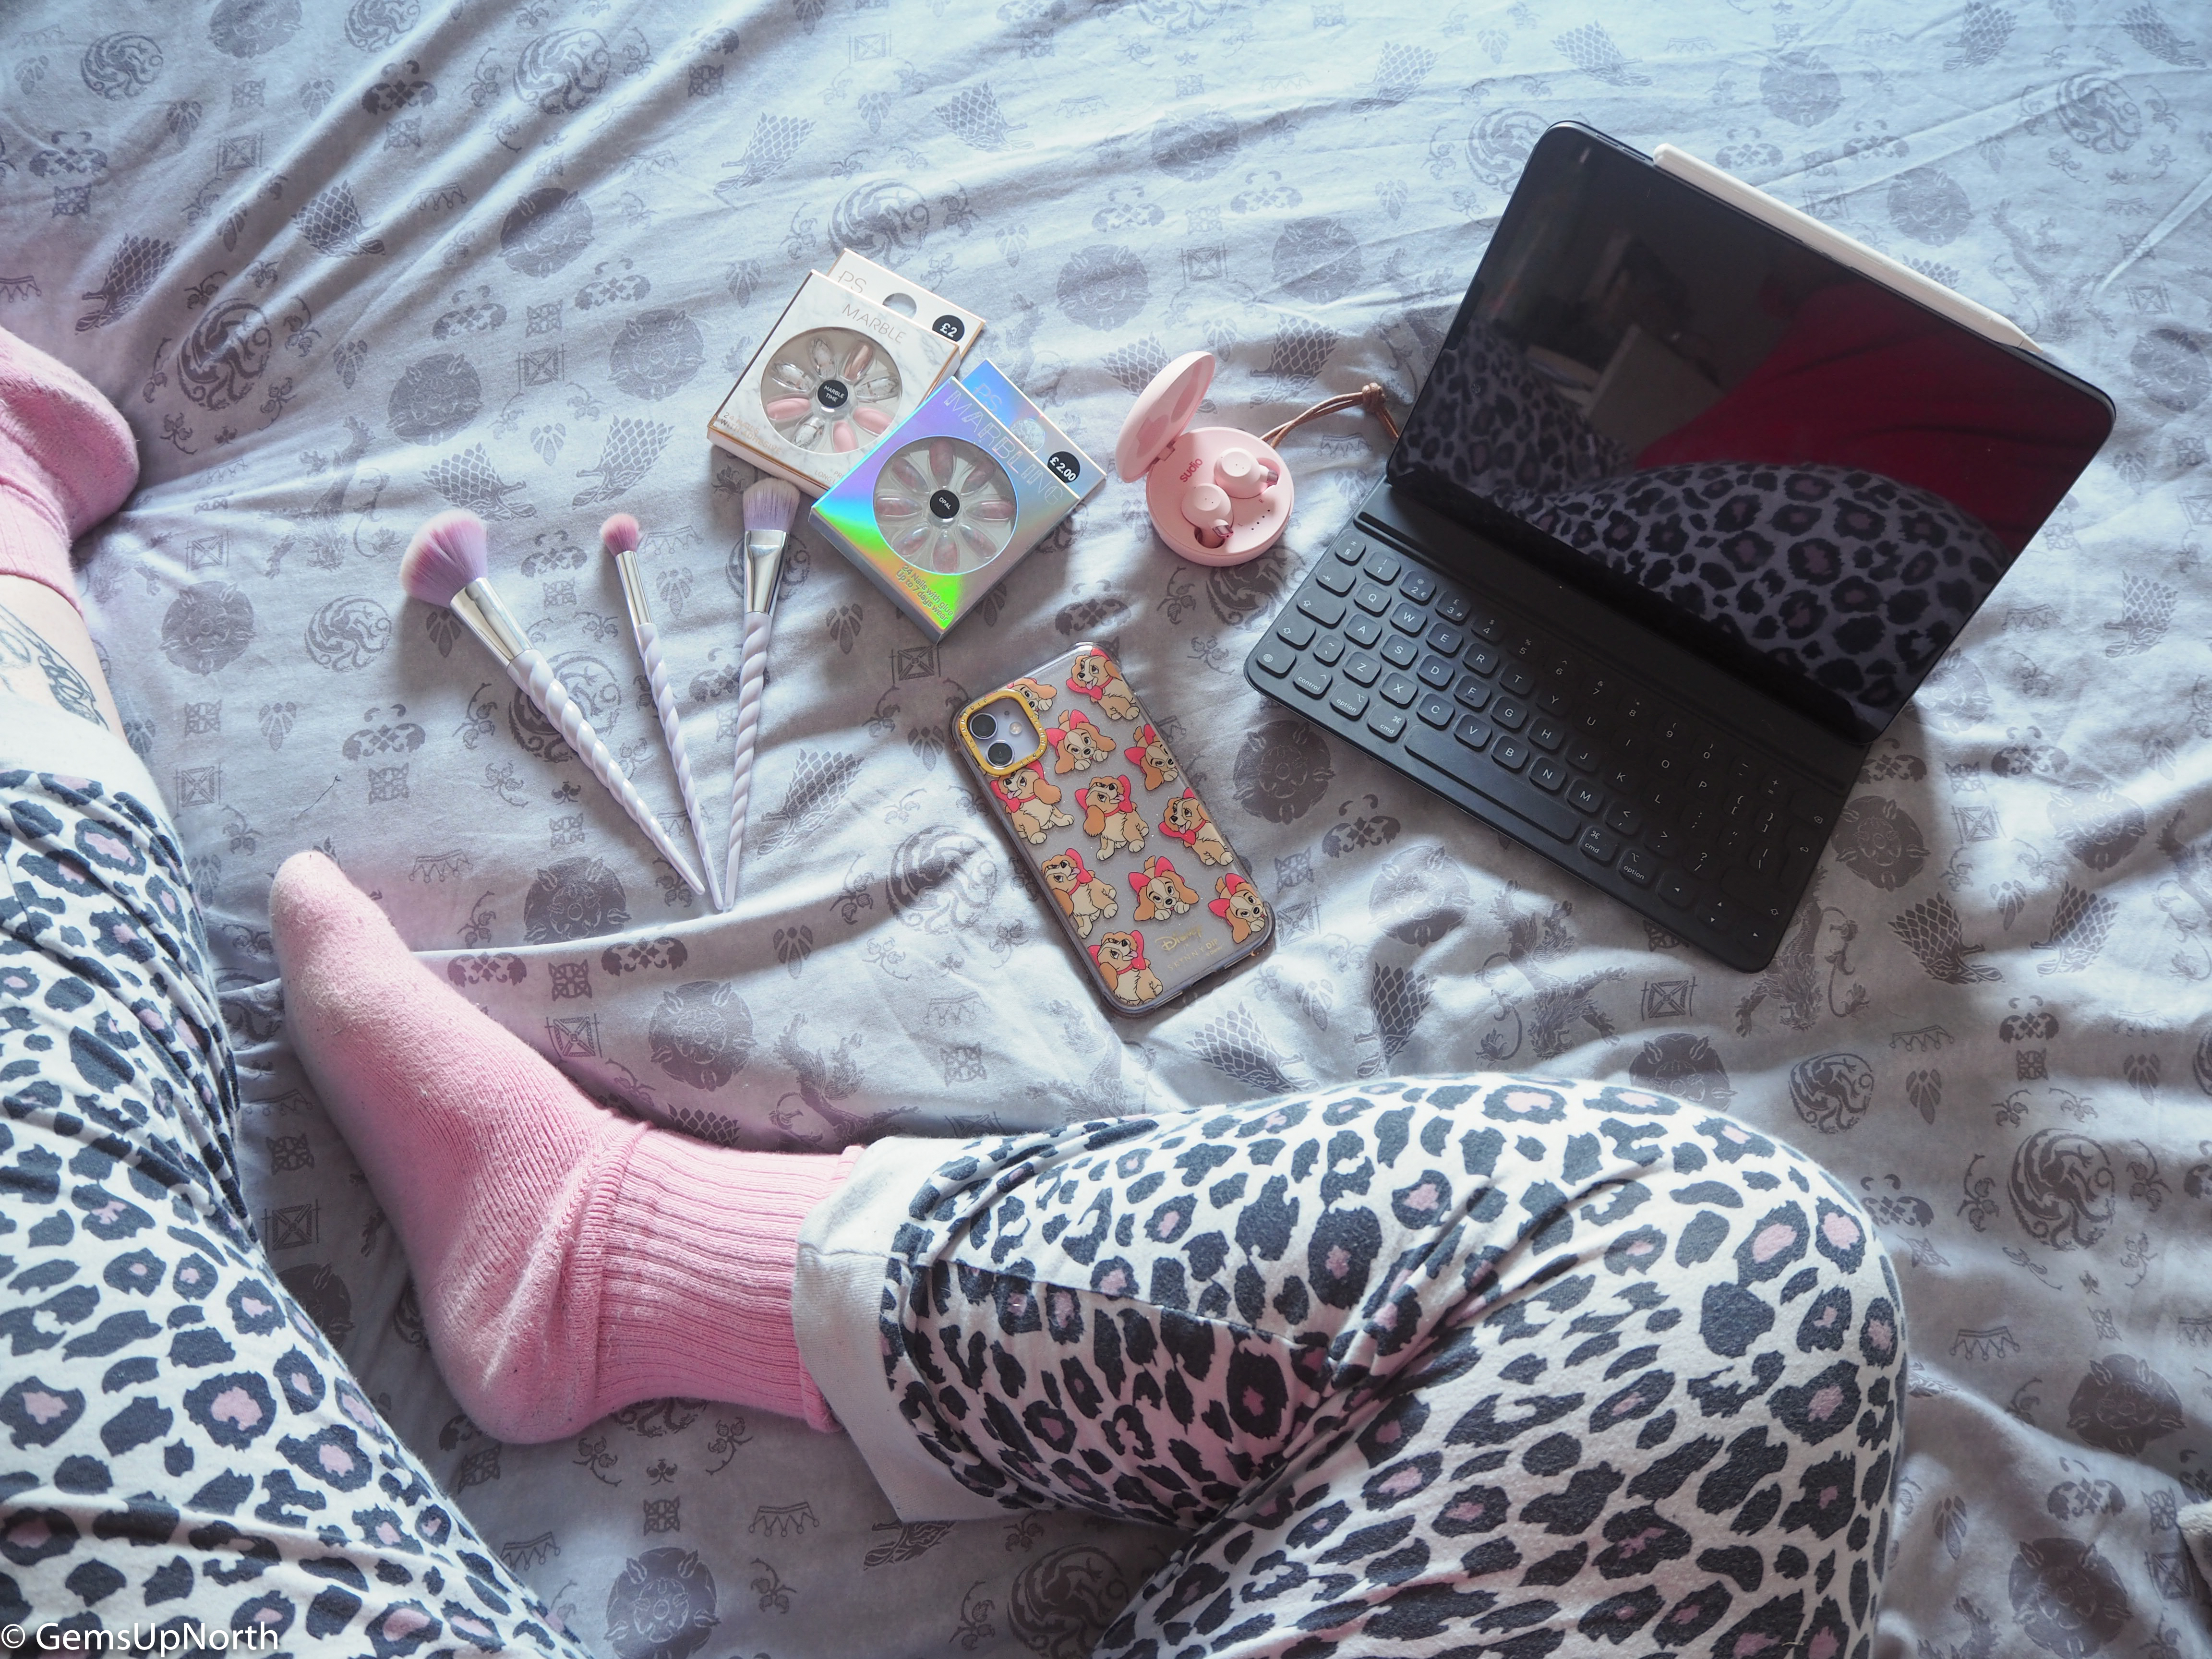 Shot of GemsUpNorth's leg with leopard print PJs on, FEM Sudio ear buds, iPad, Phone and some beauty bits on a GOT bed set